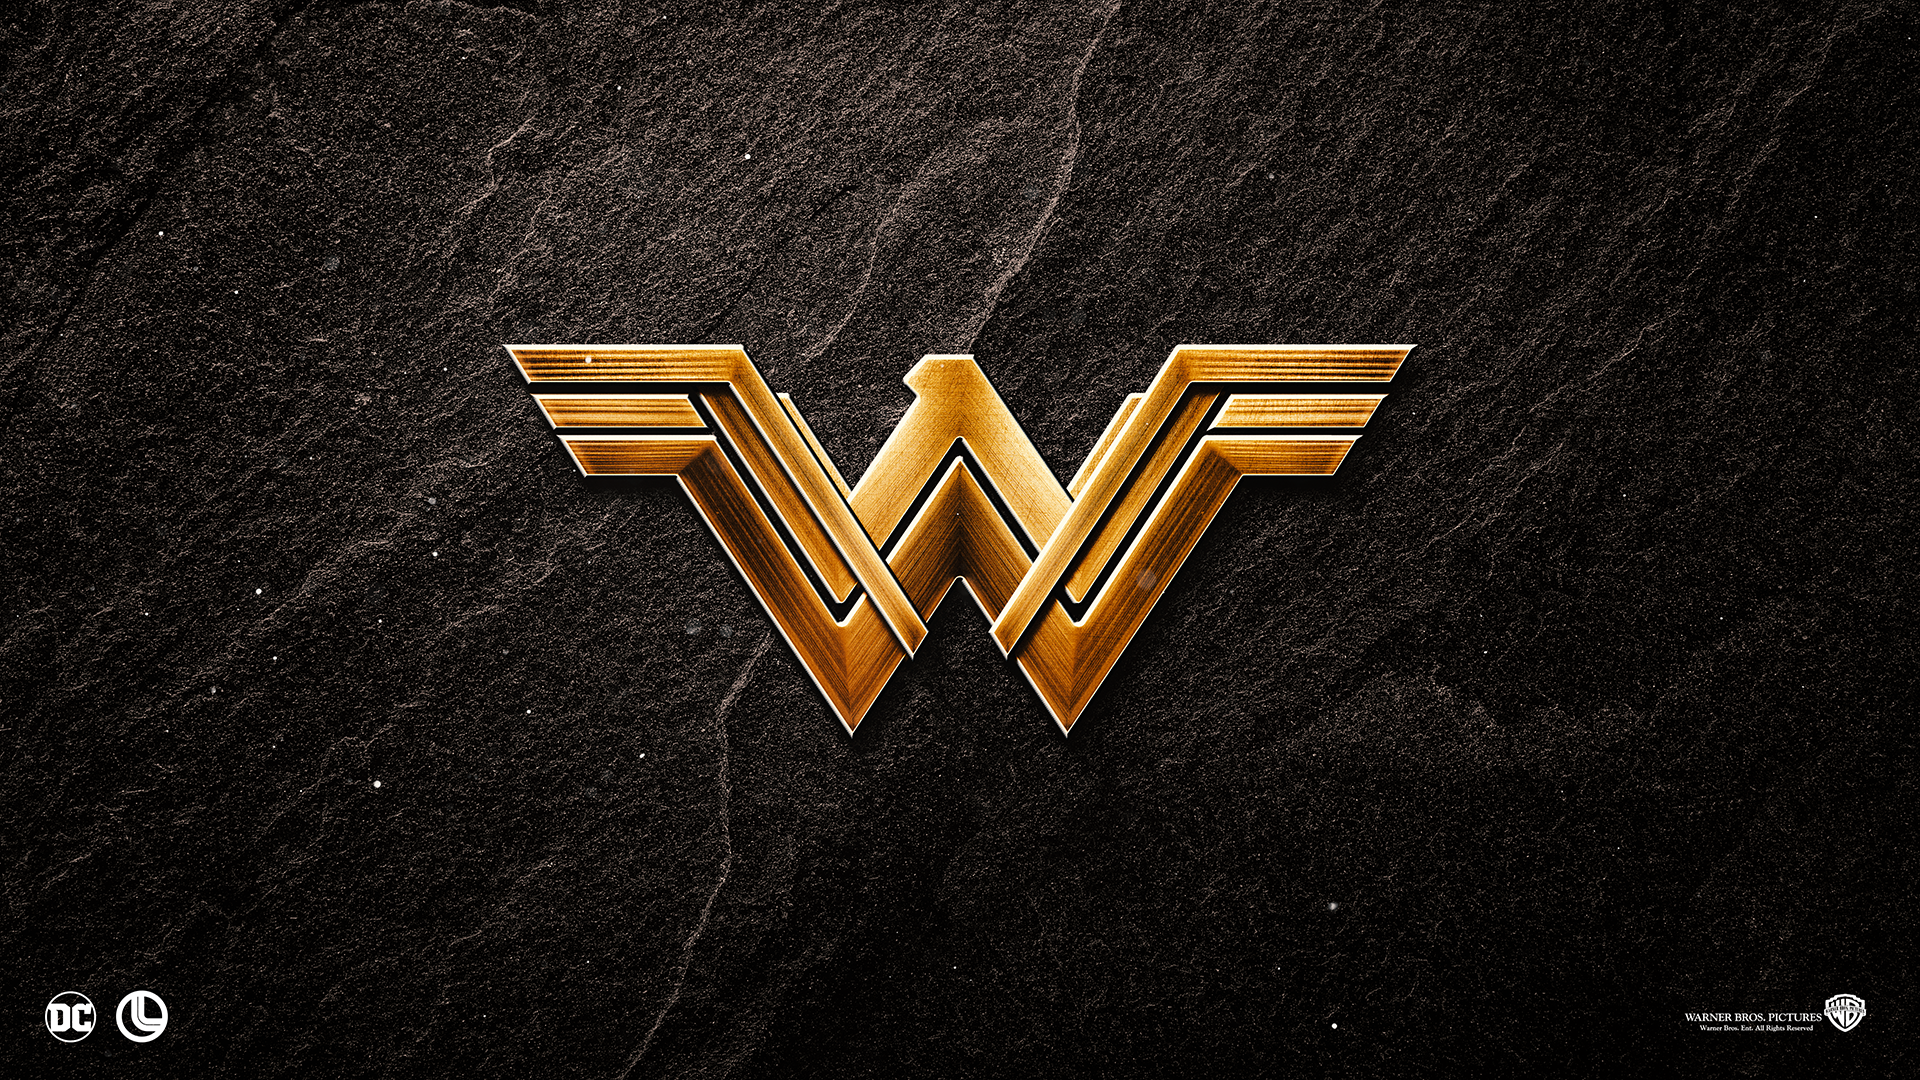 100 Wonder Woman Logo Wallpapers Wallpaper Cave 115 Wonder Woman